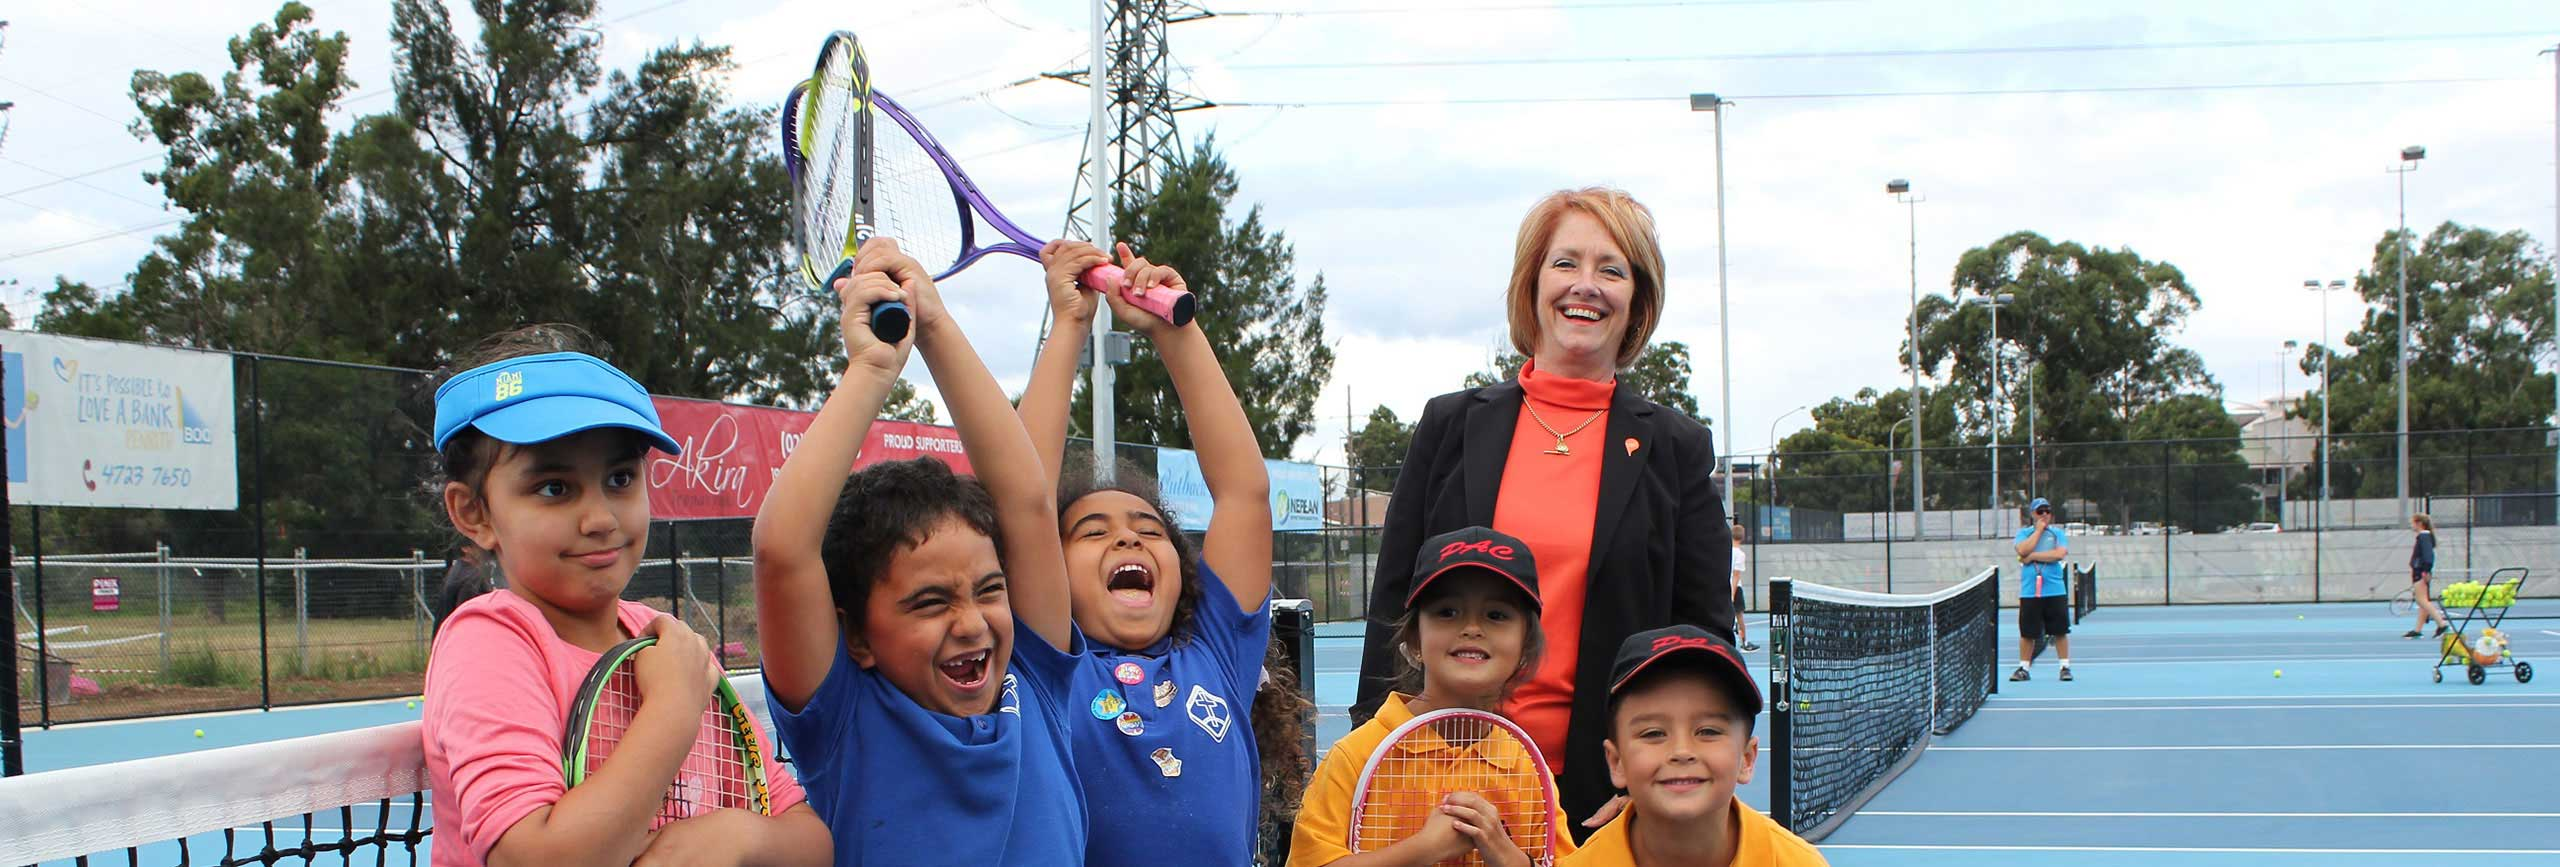 Penrith Mayor Cr Karen McKeown with children on Woodriff Gardens Tennis courts.